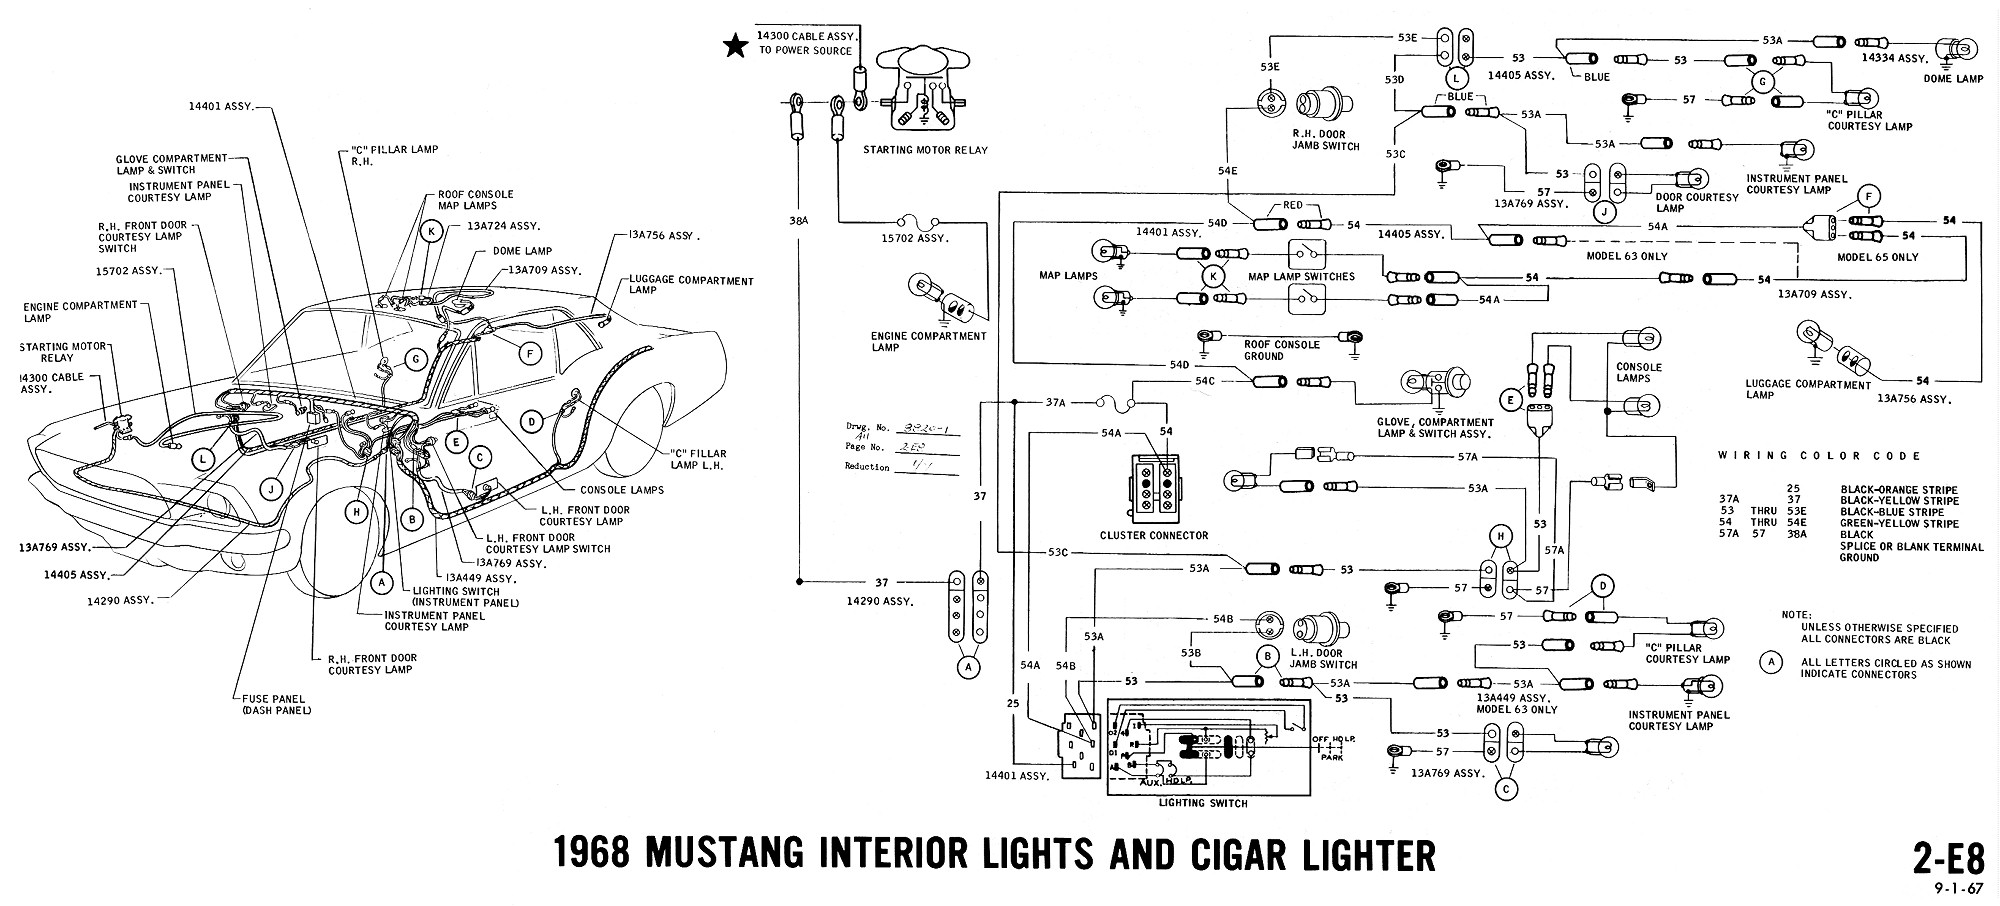 1968 Mustang Wiring Diagram Vacuum Schematics on Chevy Tilt Steering Column Diagram